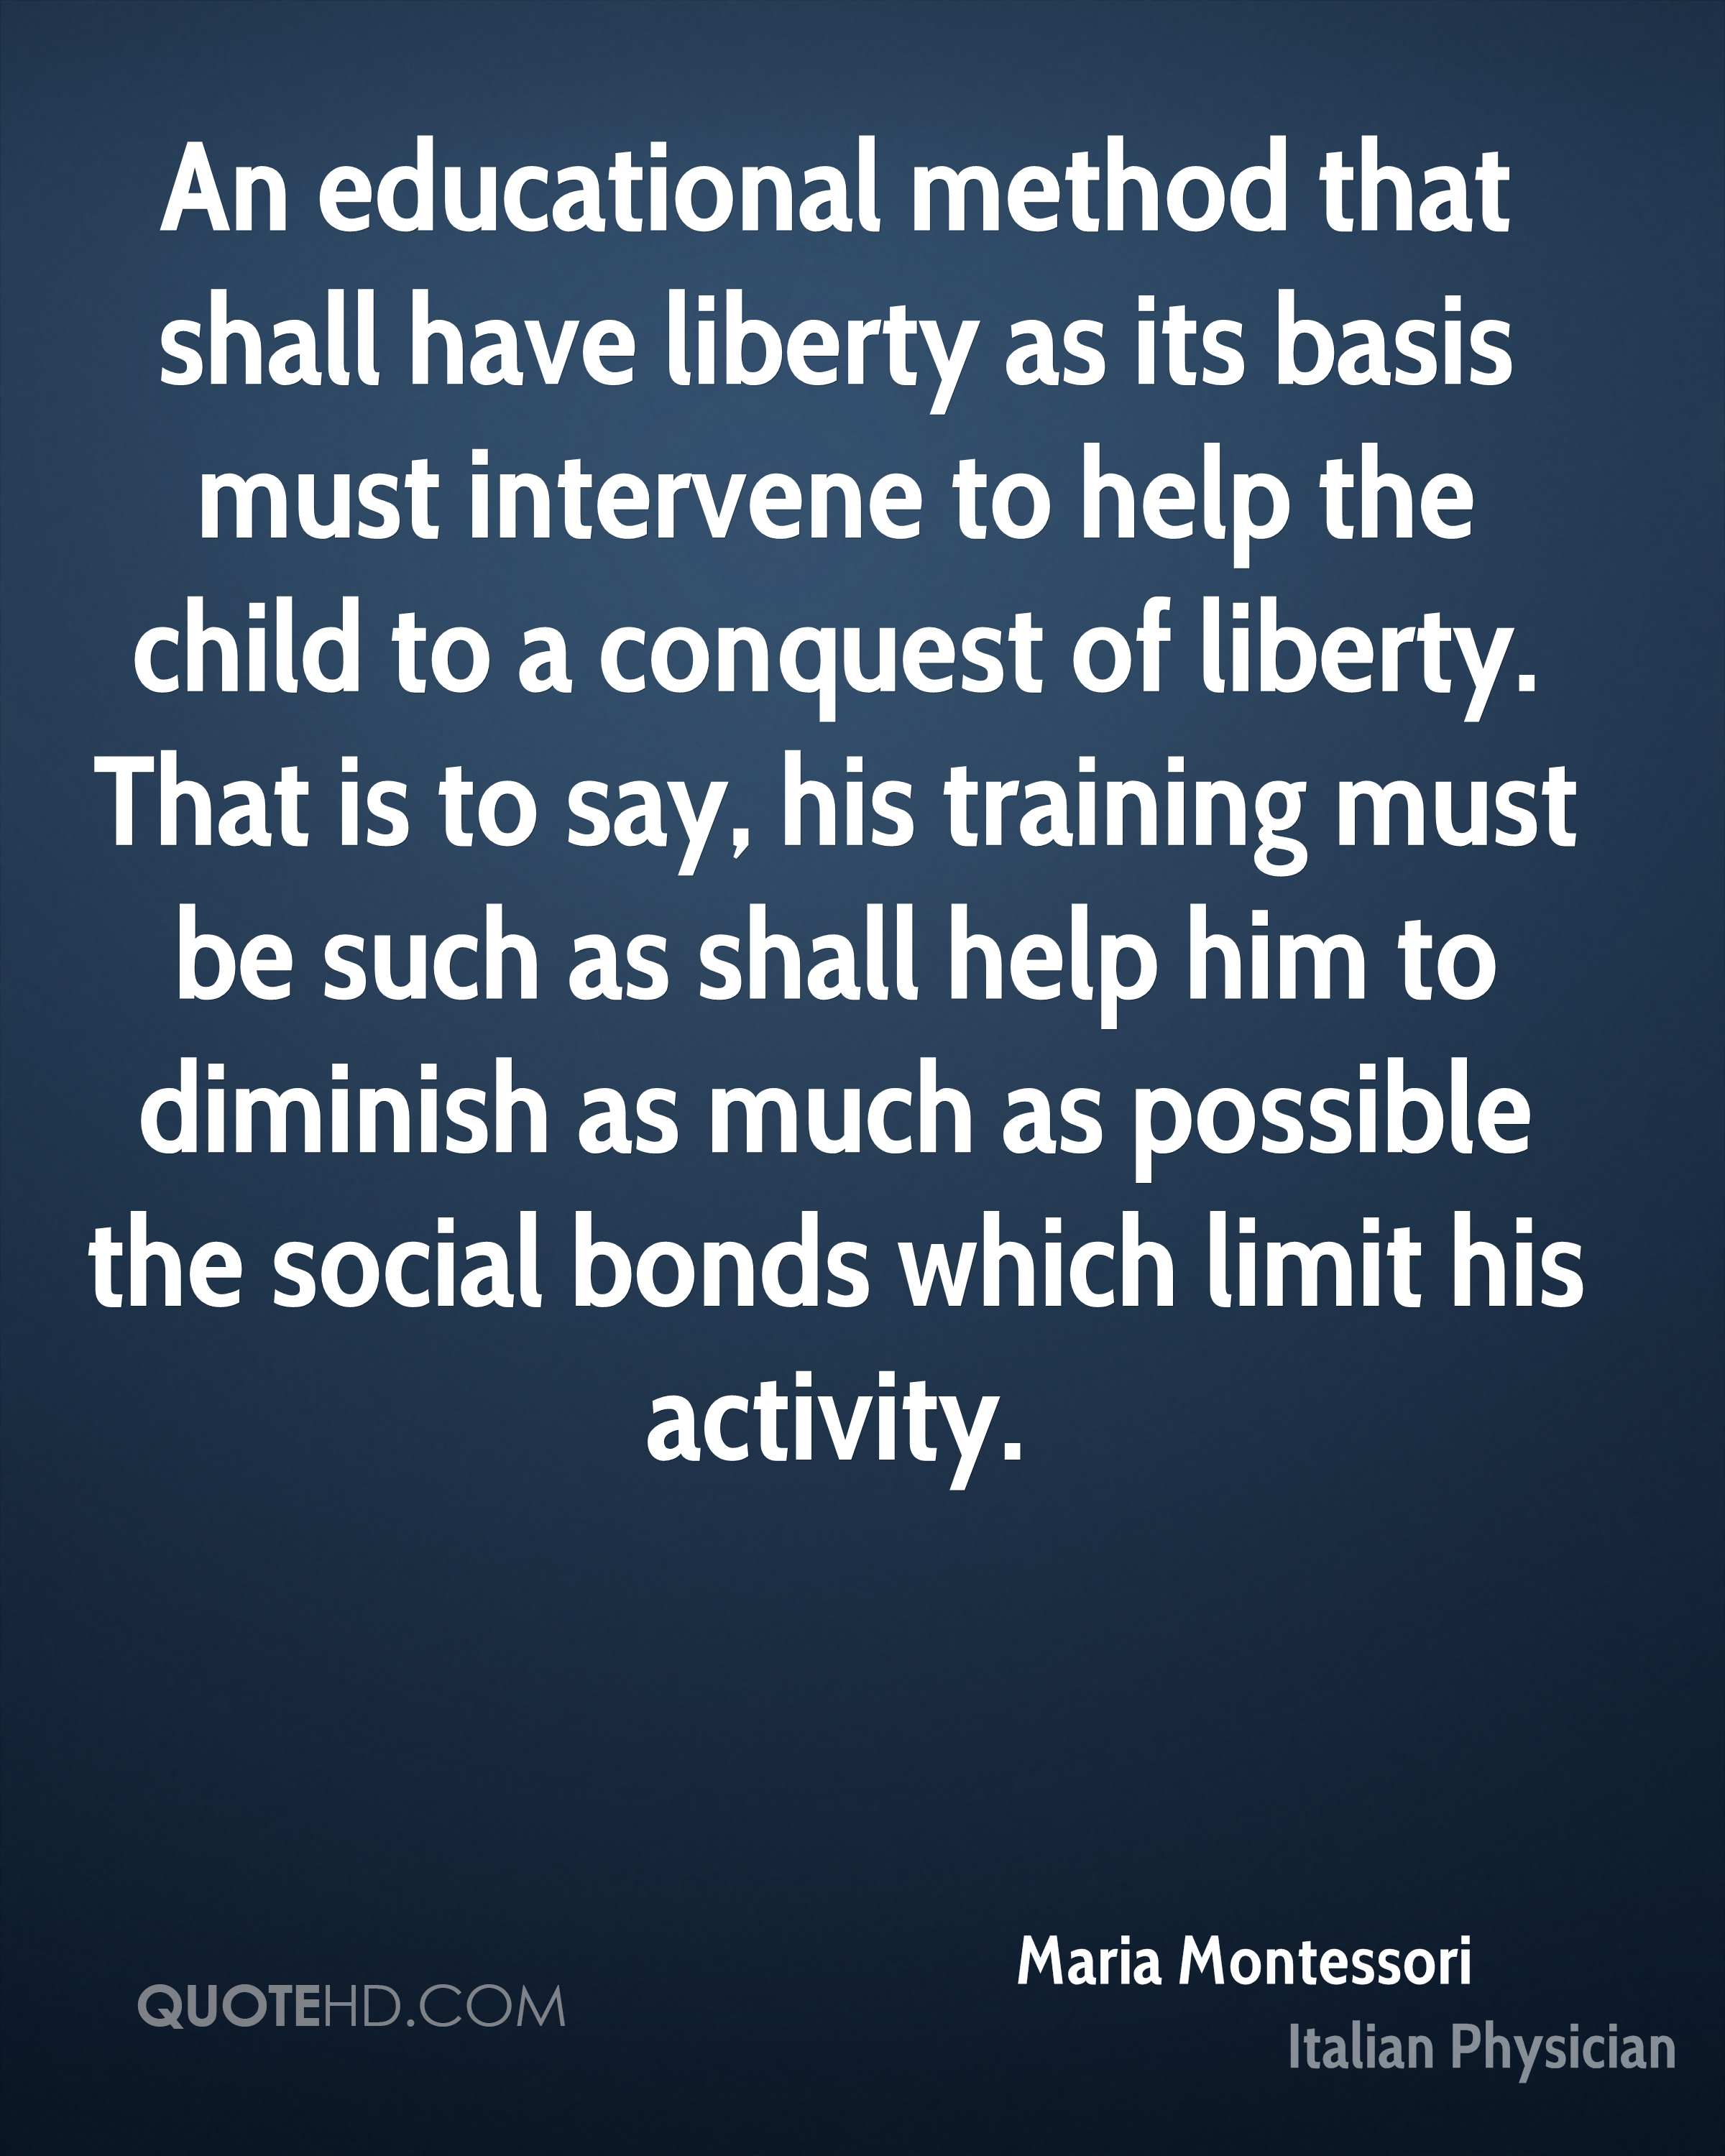 An educational method that shall have liberty as its basis must intervene to help the child to a conquest of liberty. That is to say, his training must be such as shall help him to diminish as much as possible the social bonds which limit his activity.